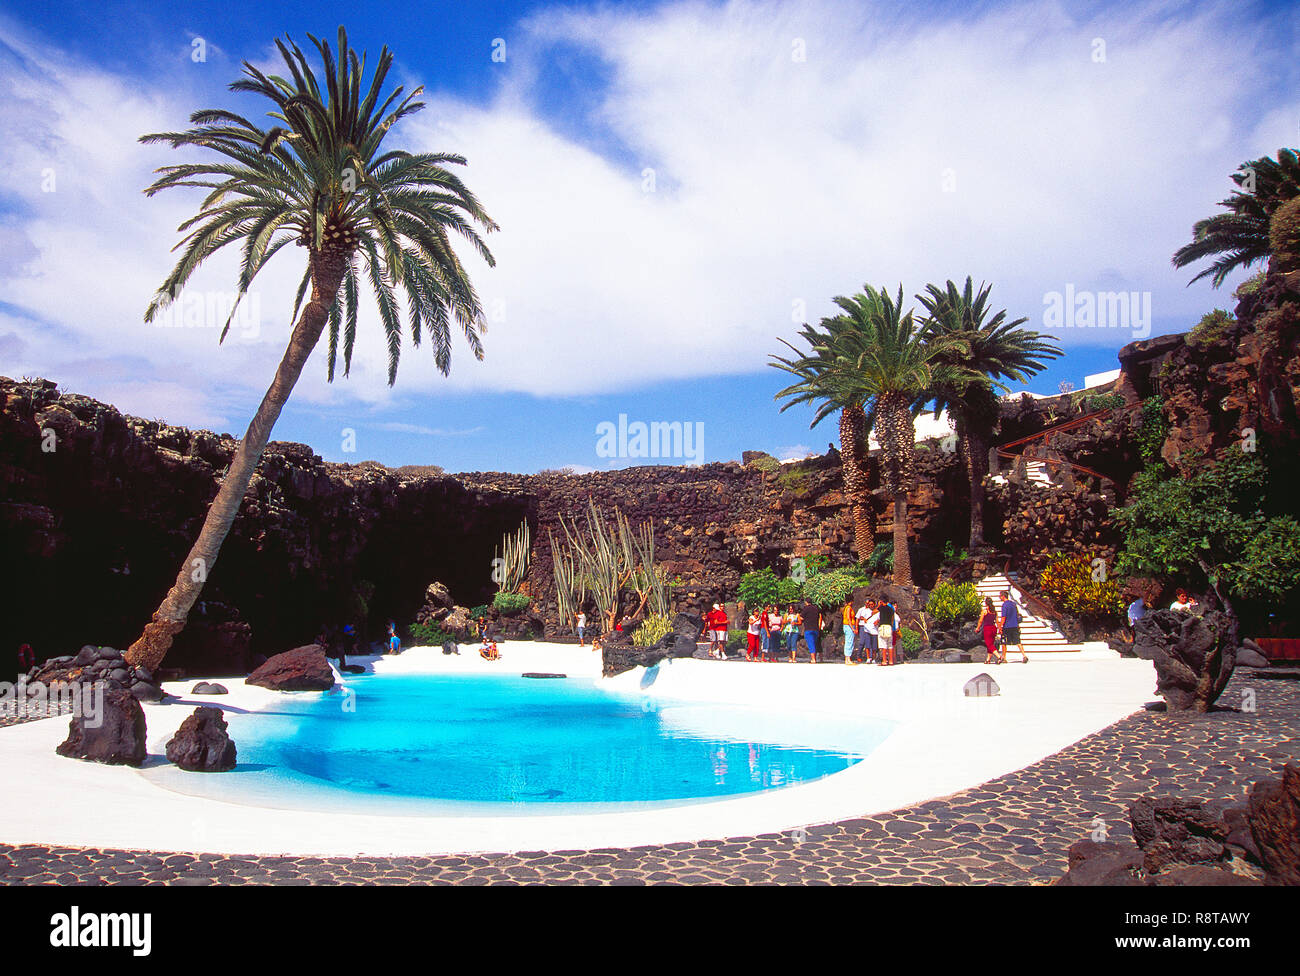 Los Jameos del Agua, by Cesar Manrique. Lanzarote, Canary Islands, Spain. Stock Photo